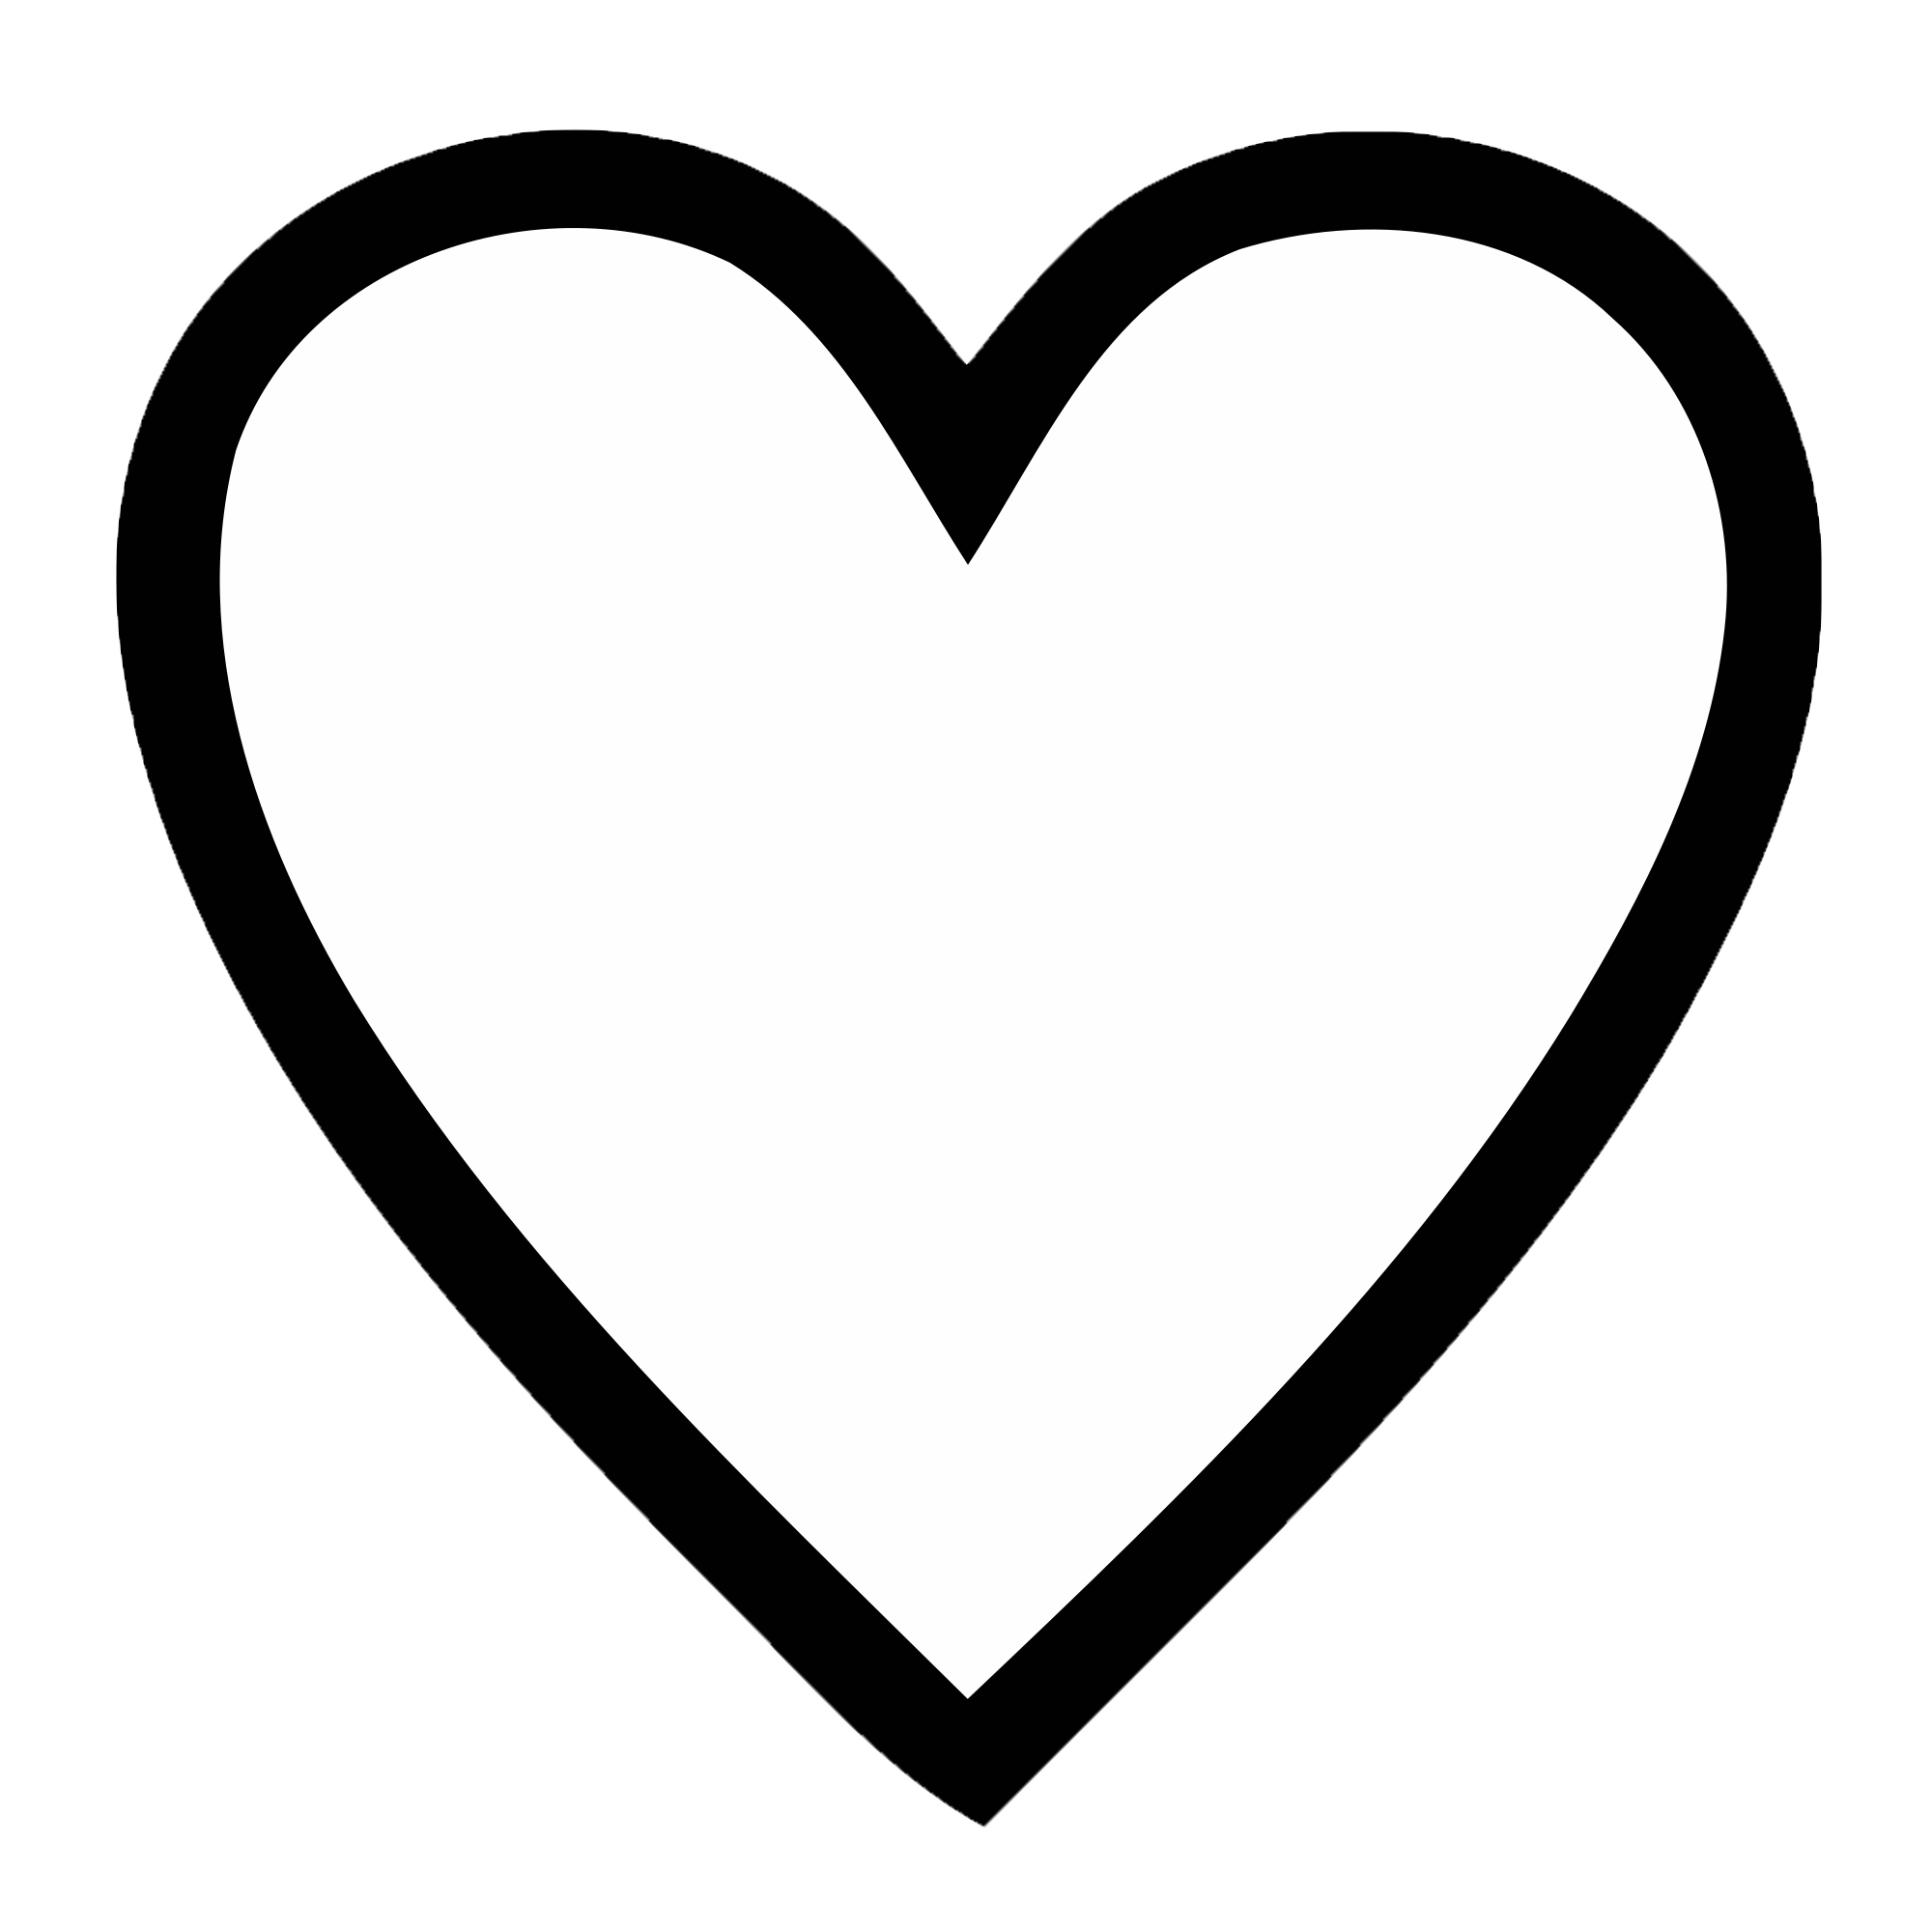 2000x2000 Editable Heart Template